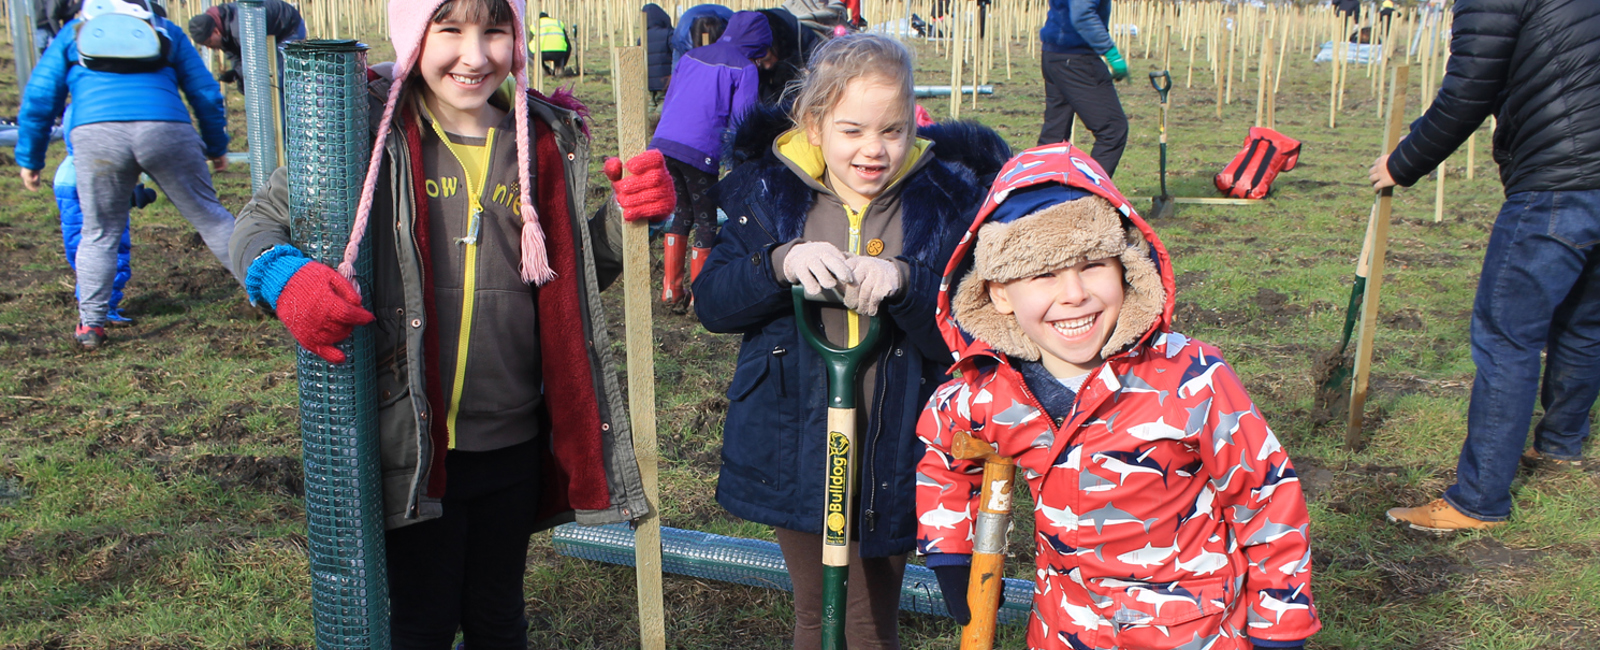 You planted over 2500 trees at Waypost Wood!